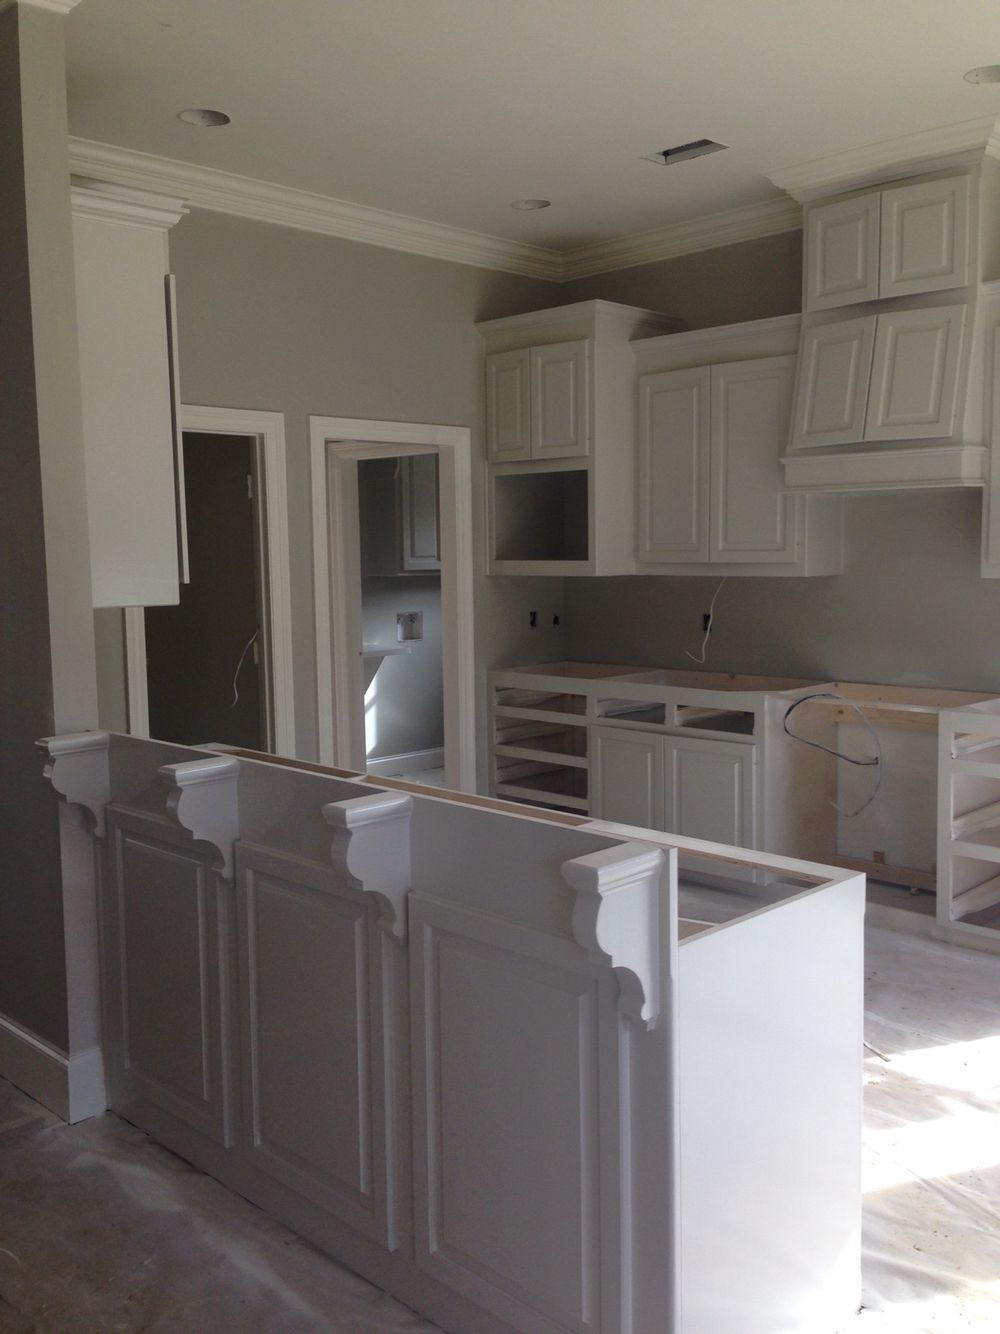 Walls Are Benjamin Moore Revere Pewter Cabinets Bm Edgecomb Gray Trim Is